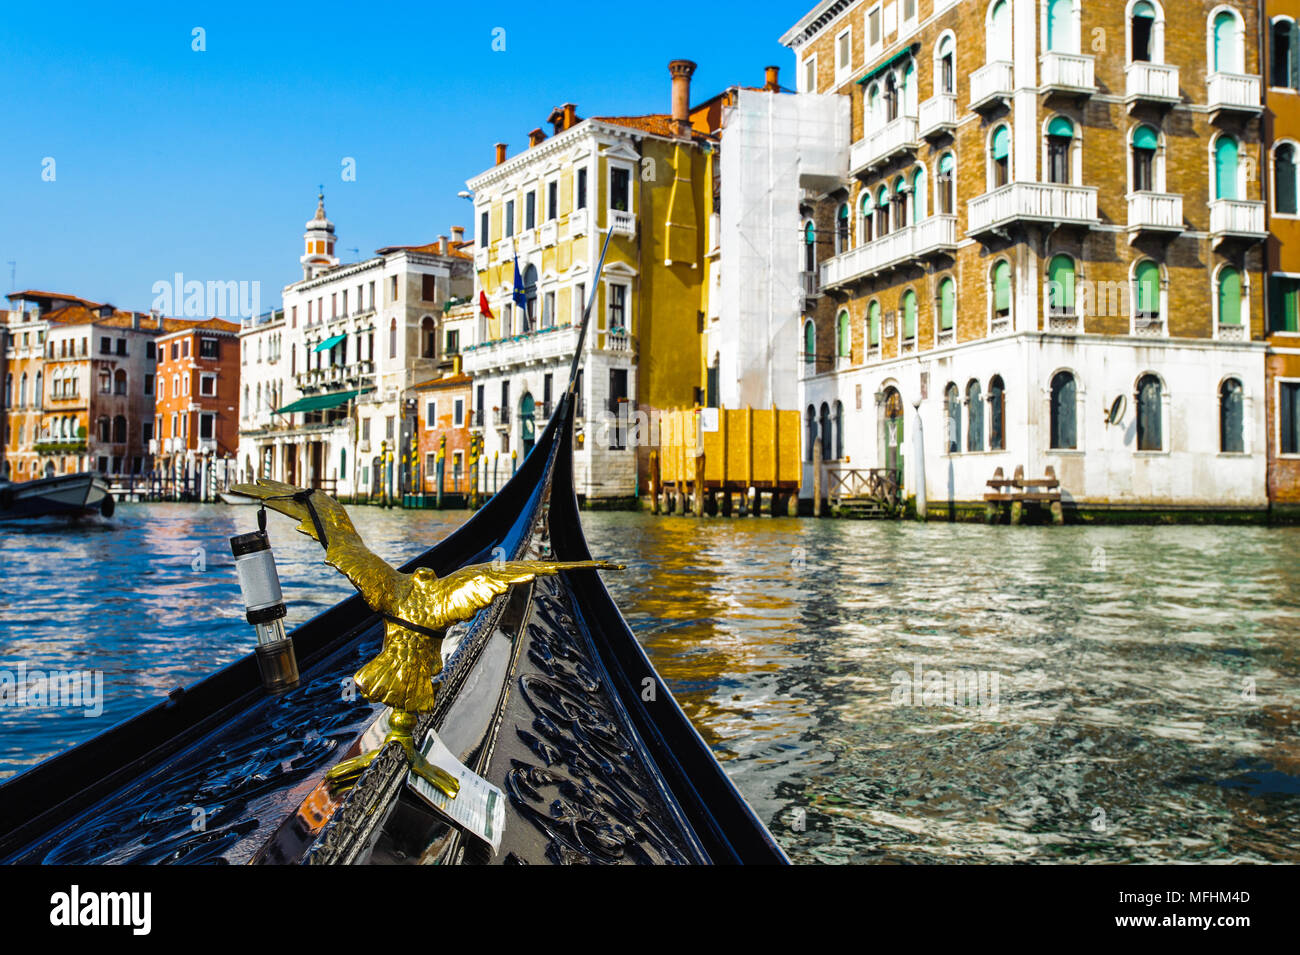 Gondola goes over the river - Stock Image